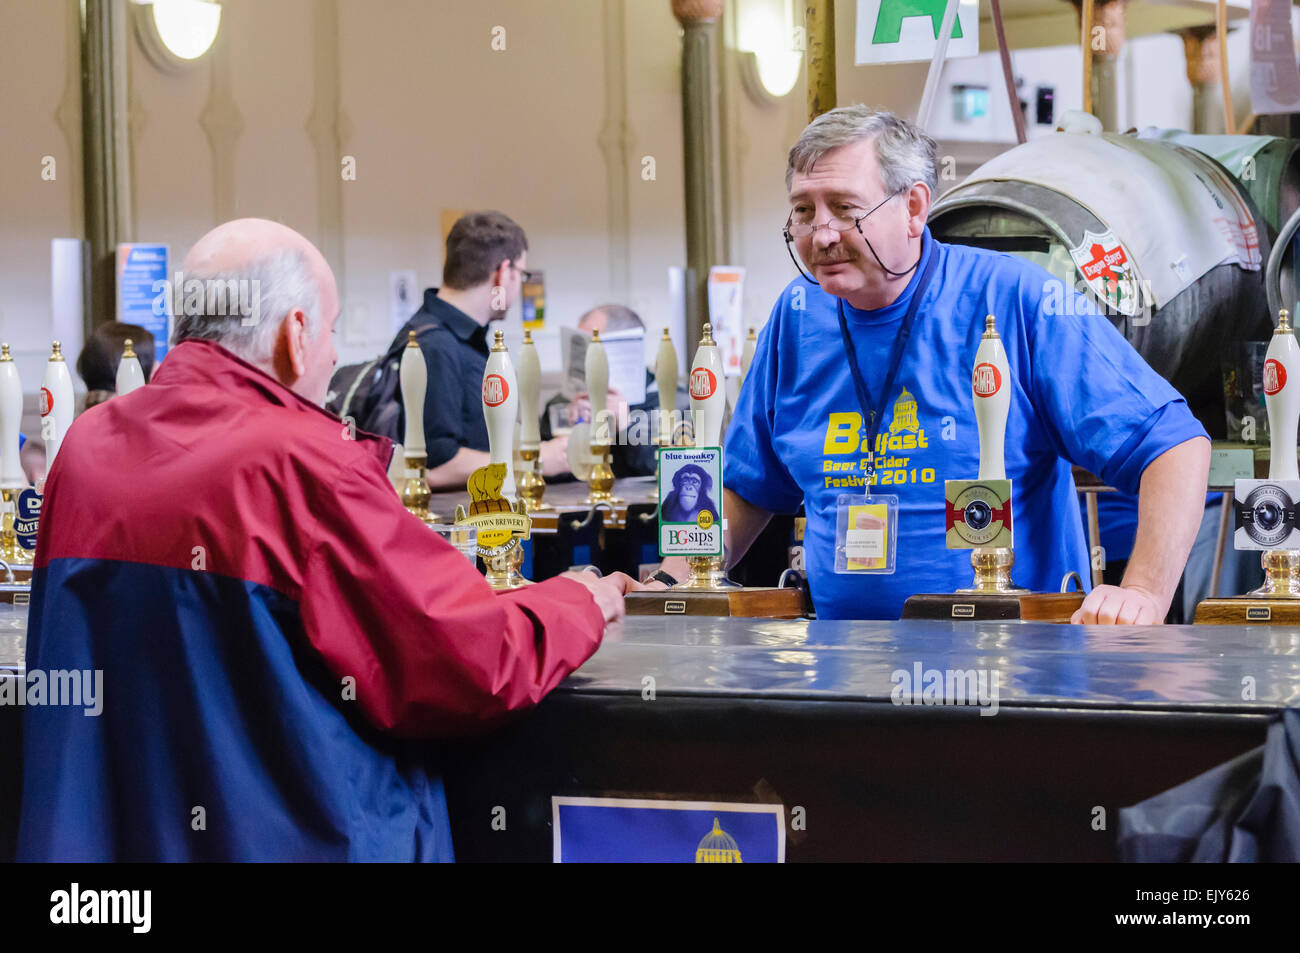 A barman serves customers at a CAMRA real ale festival. - Stock Image